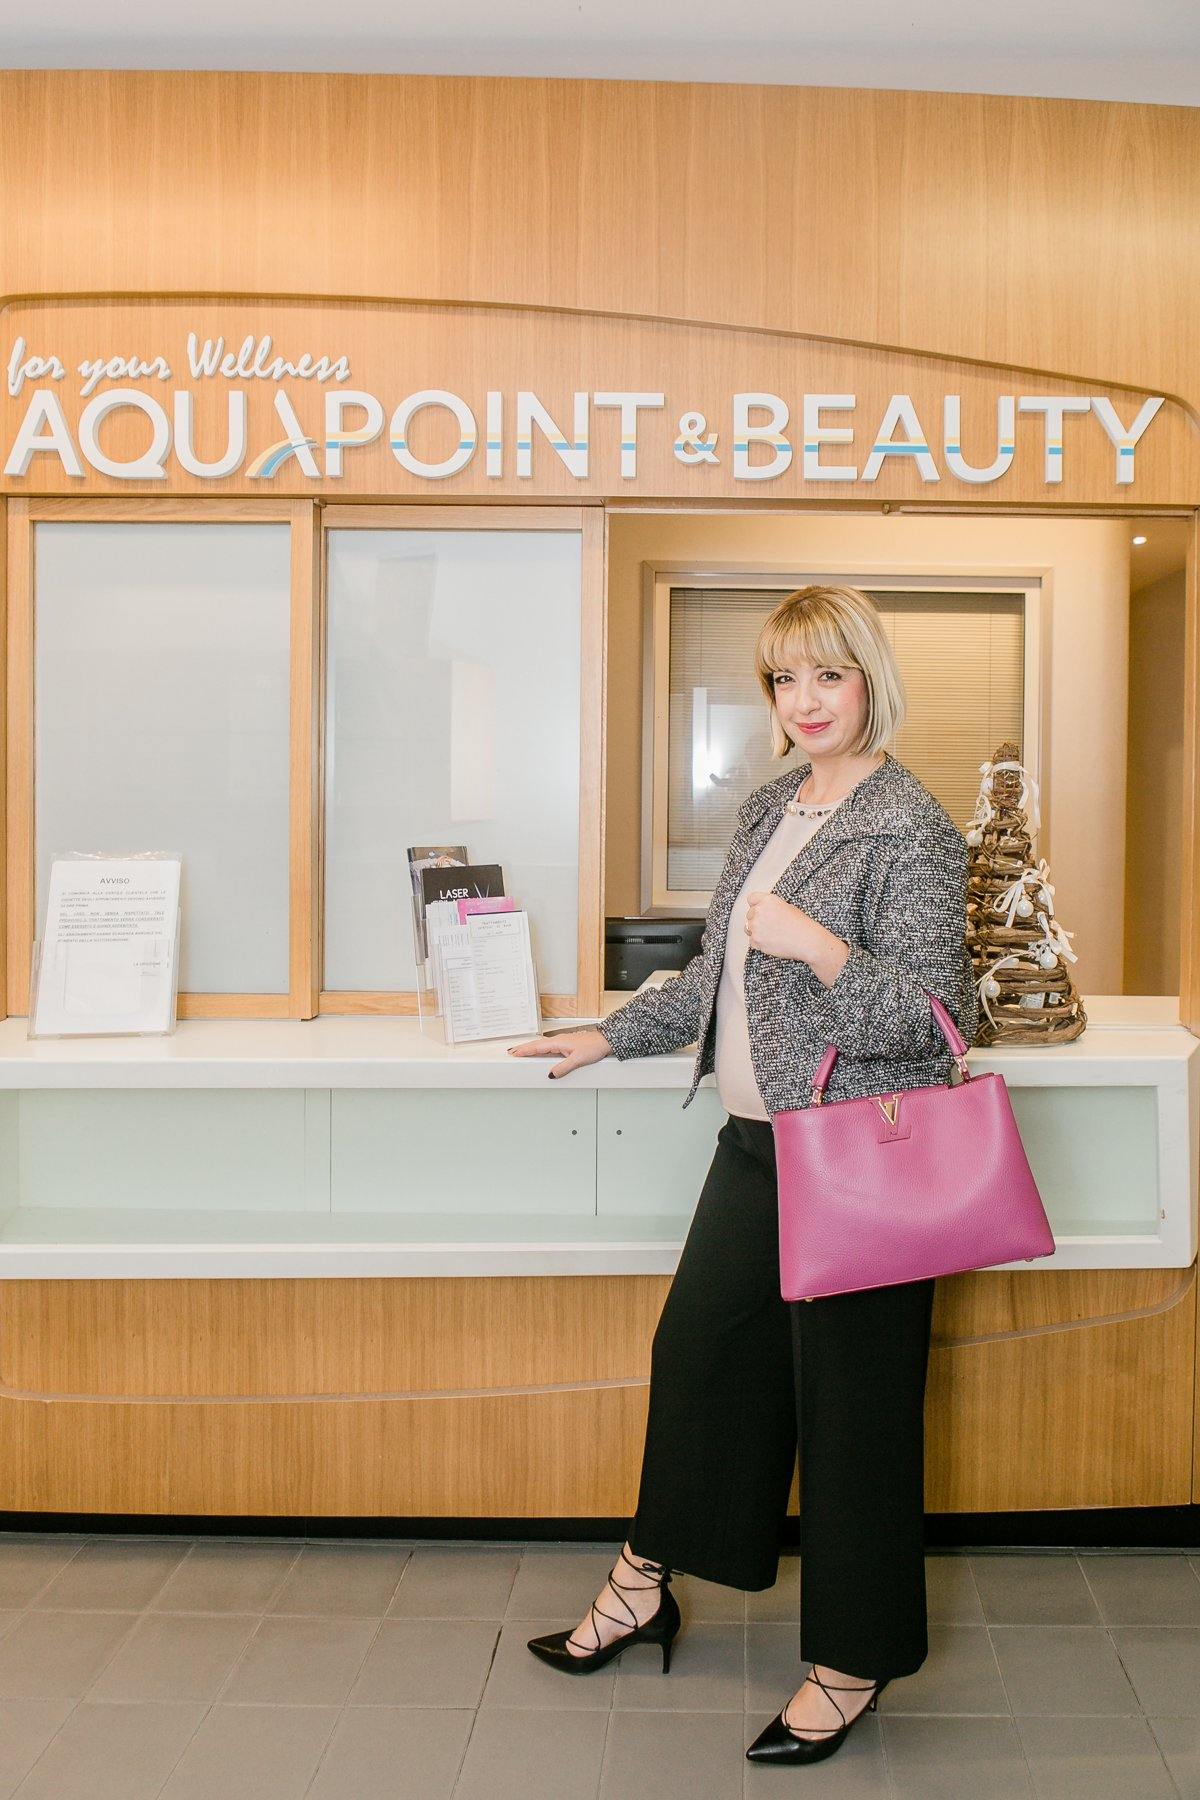 L'ingresso del centro Aquapoint & Beauty